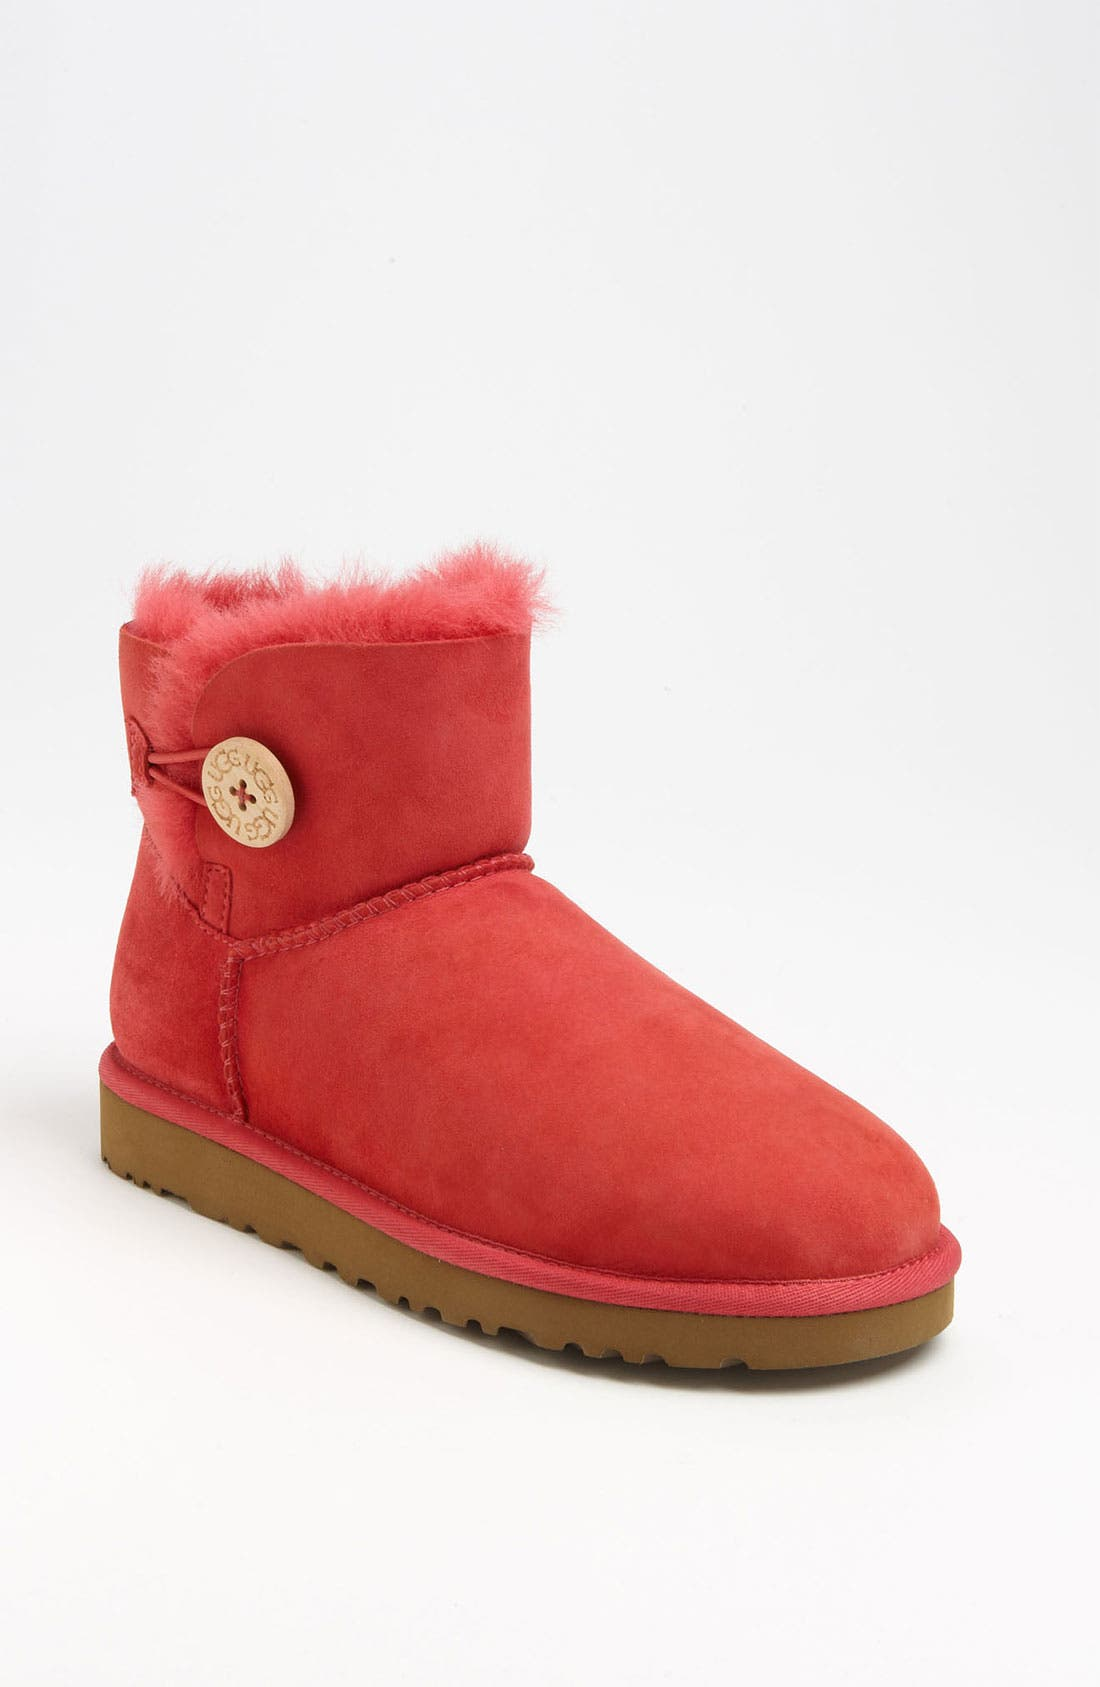 Main Image - UGG® 'Mini Bailey Button' Boot (Women)